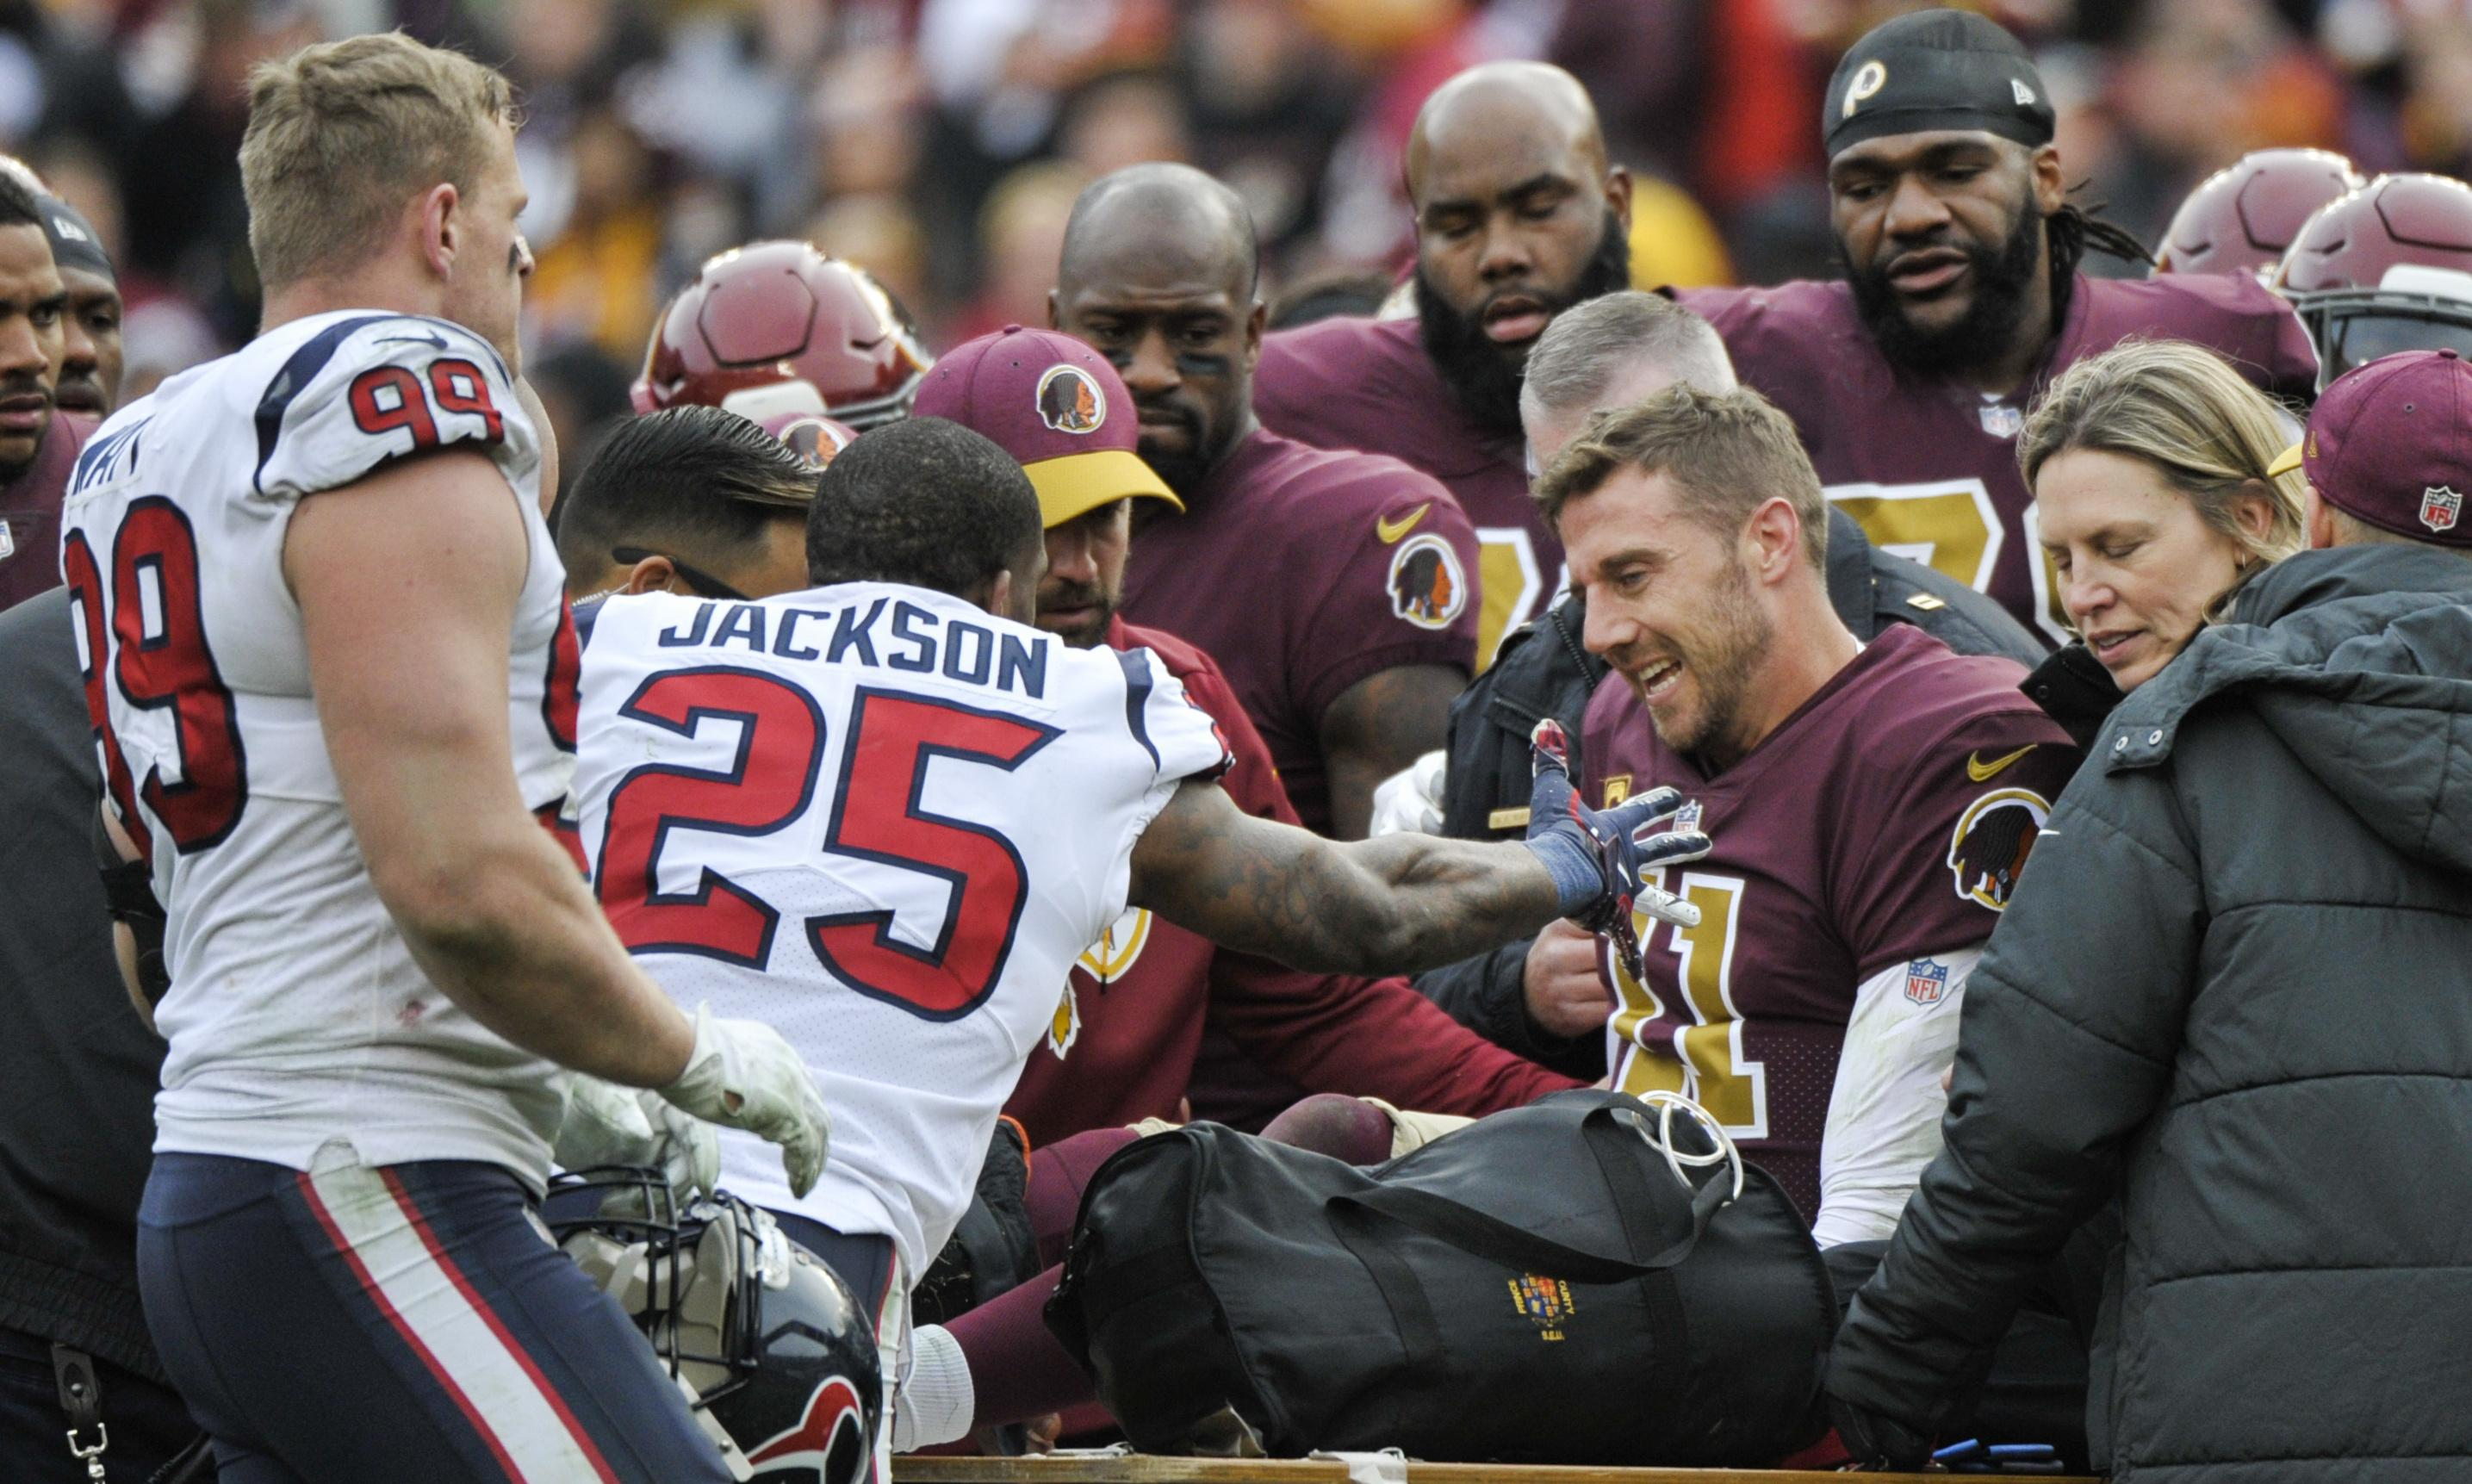 NFL round-up: Alex Smith's gruesome leg injury overshadows Washington loss